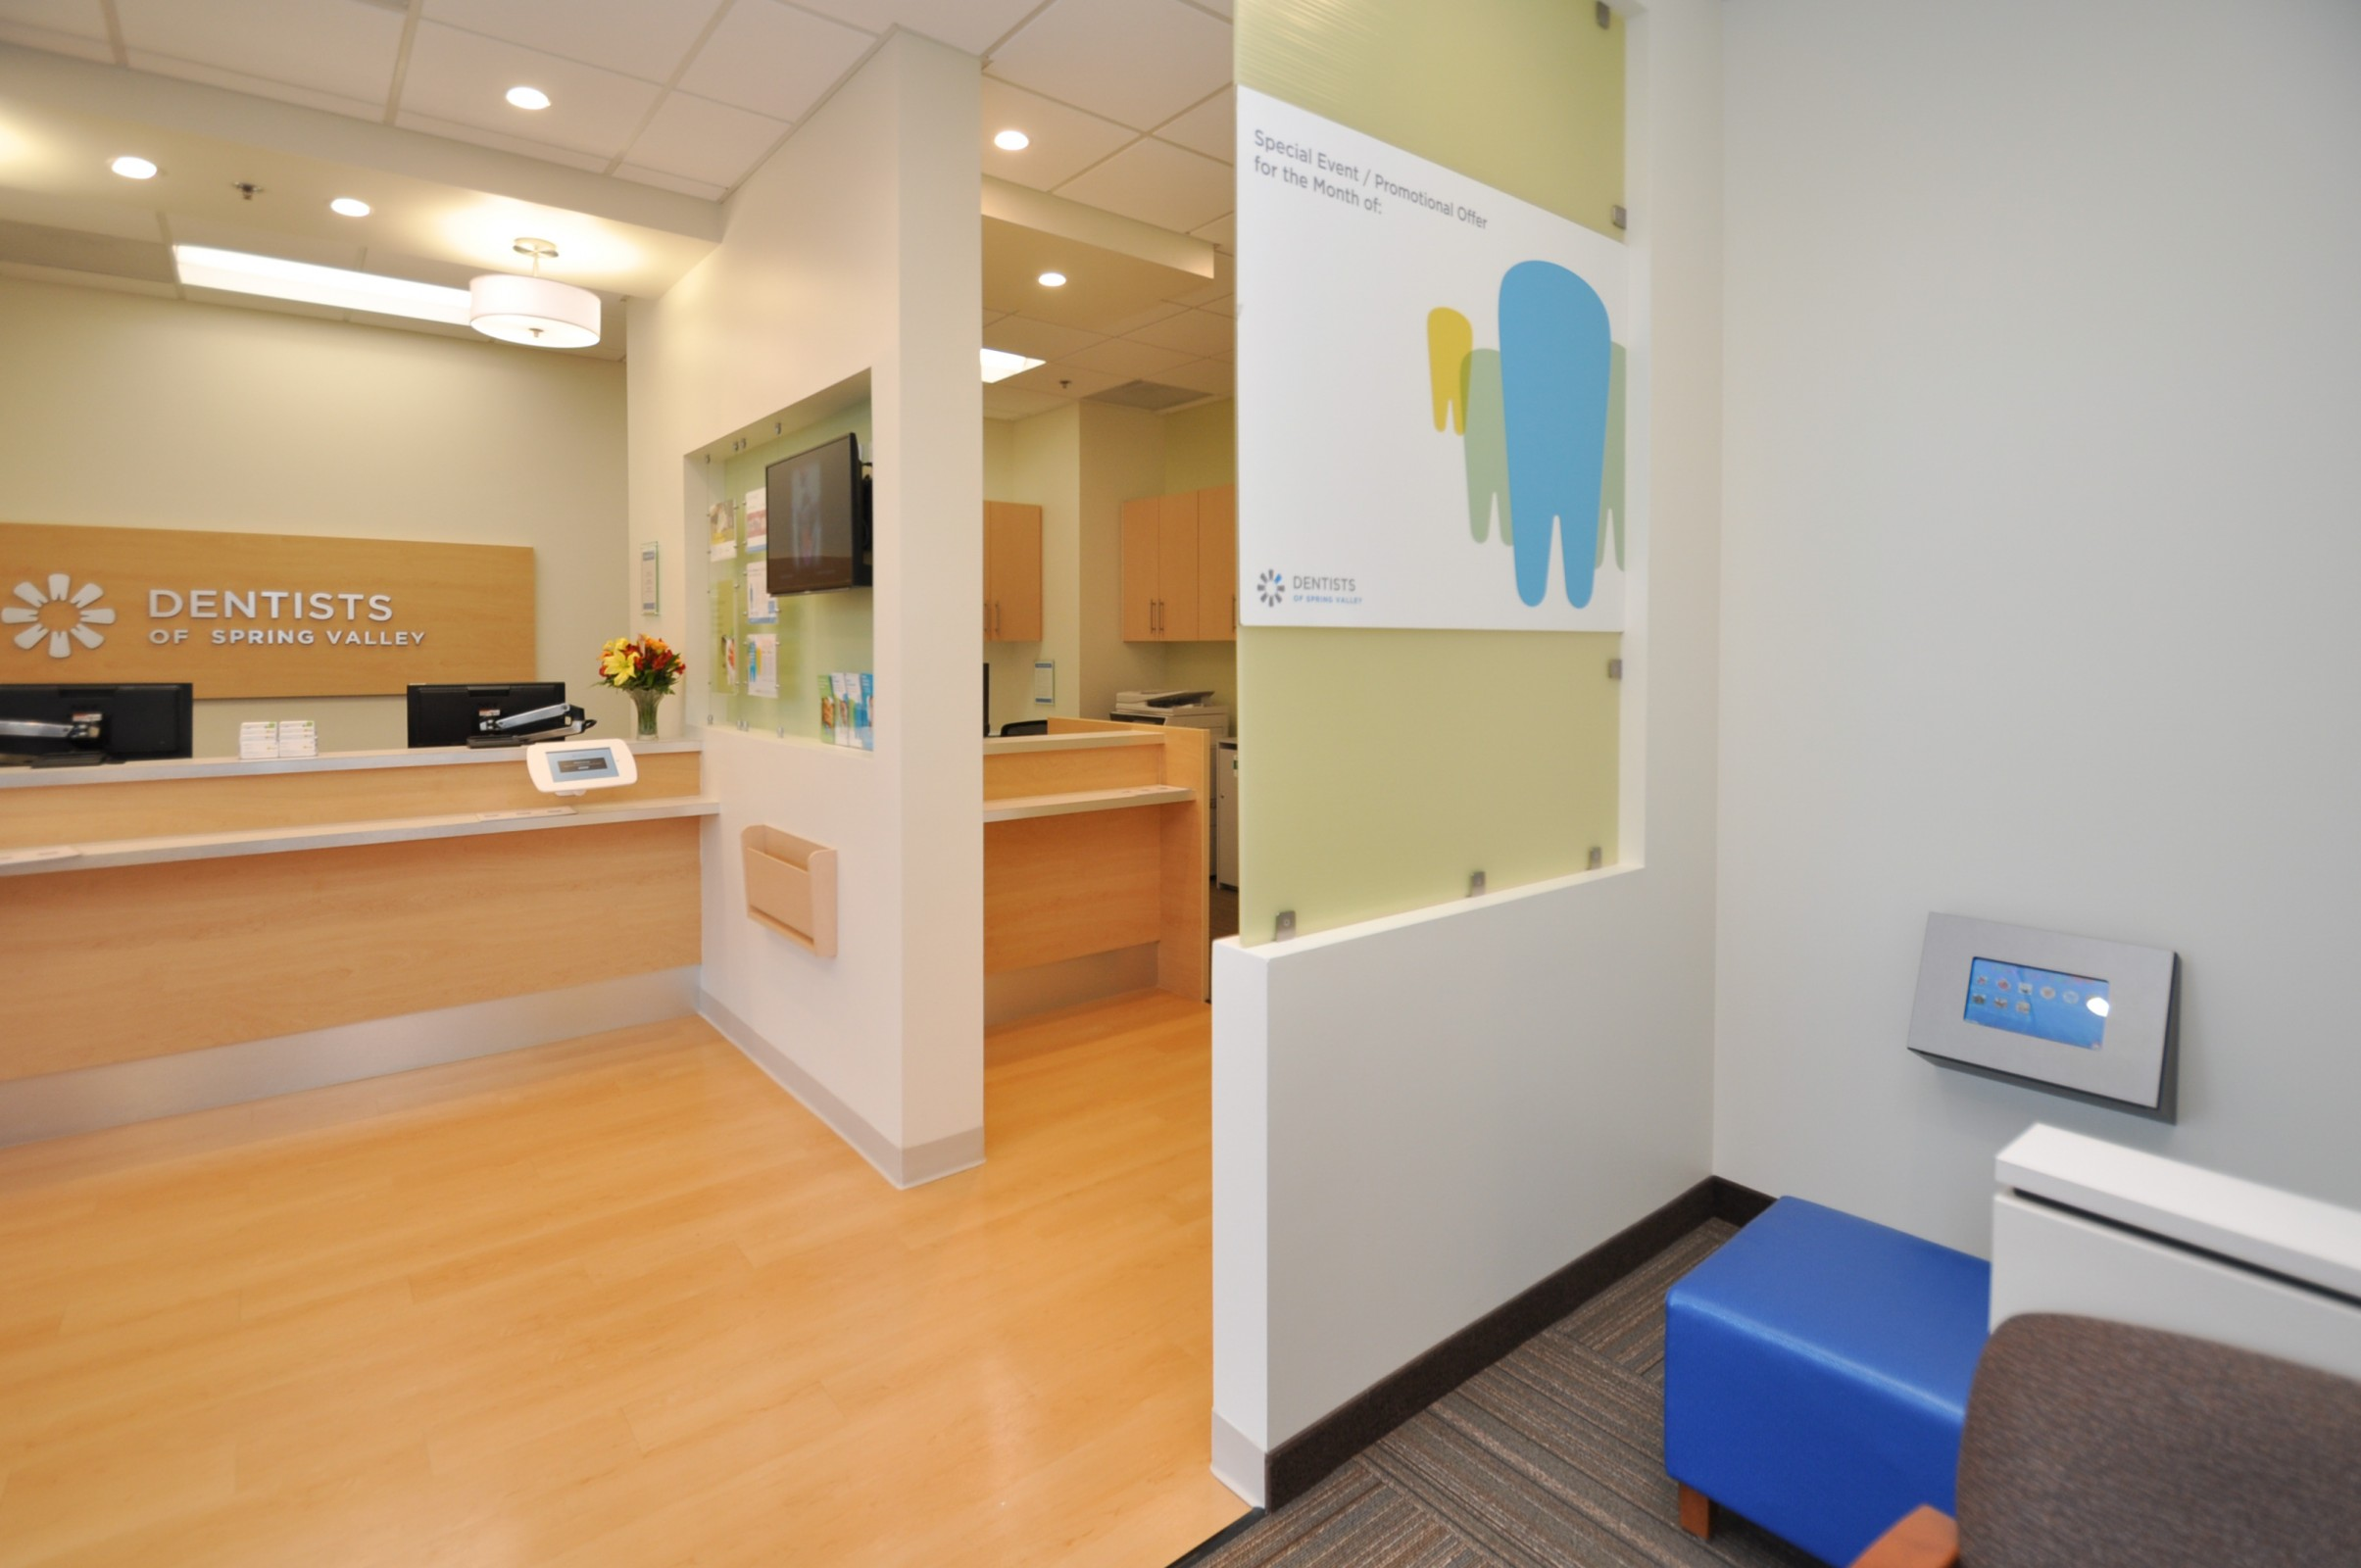 Dentists of Spring Valley image 3